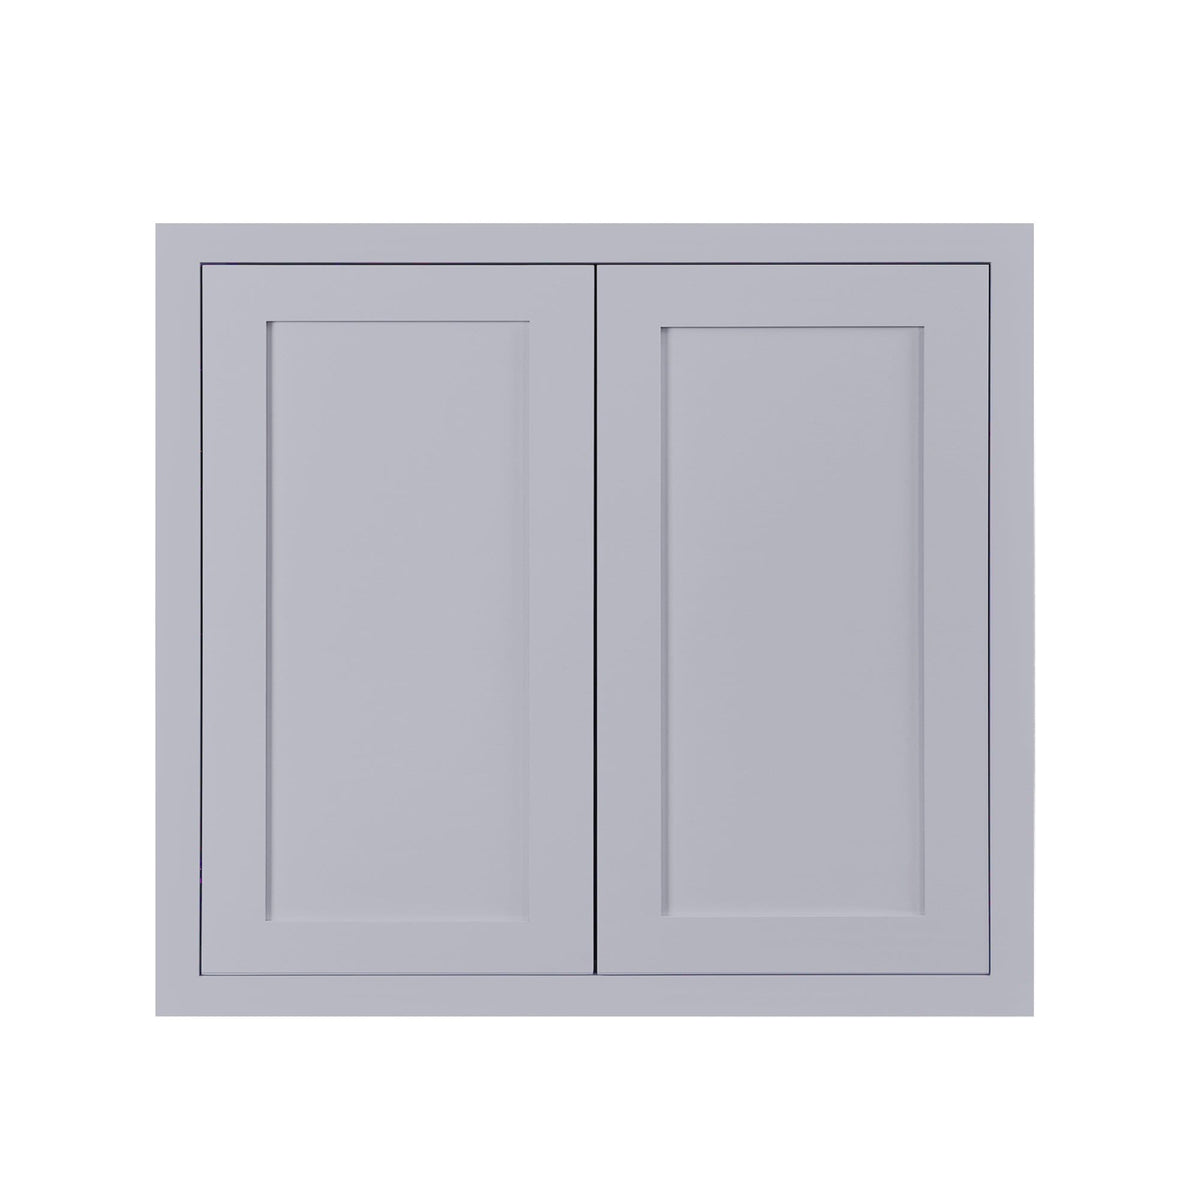 "30"" Tall Wall Cabinet 30"" Tall Light Gray Inset Shaker Wall Cabinet - Double Door - 24"", 27"", 30"", 33"" & 36"" D2W333014 Inset Kitchen Cabinets"